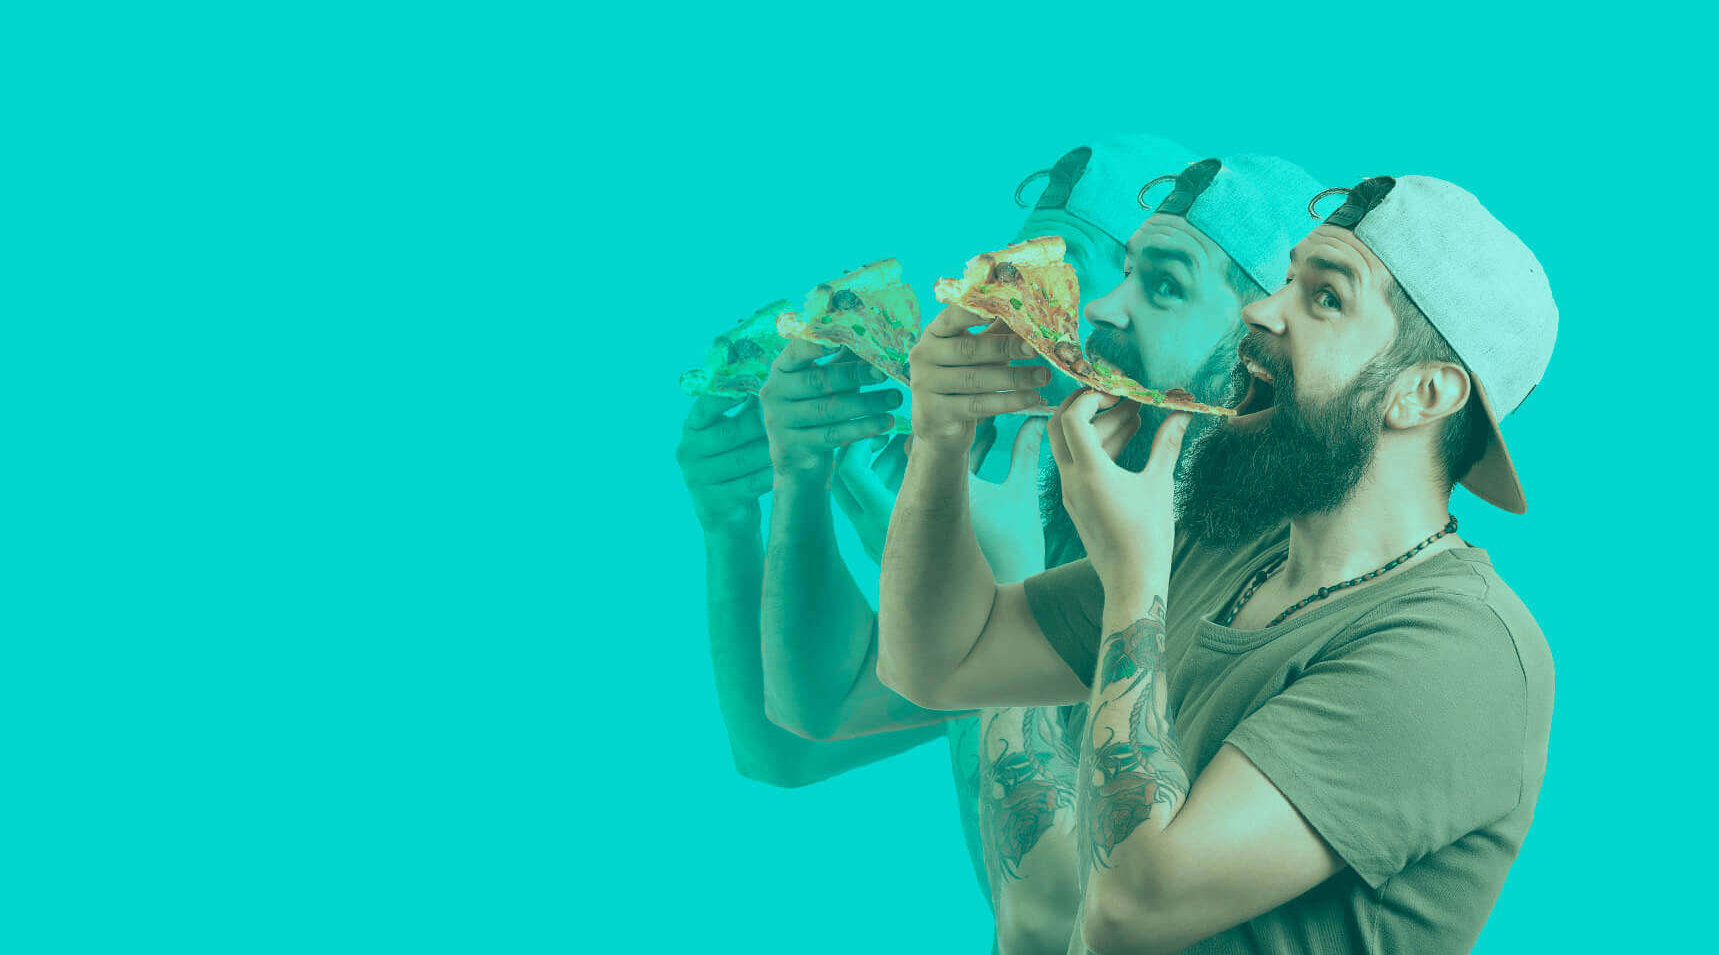 Bearded man about to take a bite out of large pizza slice